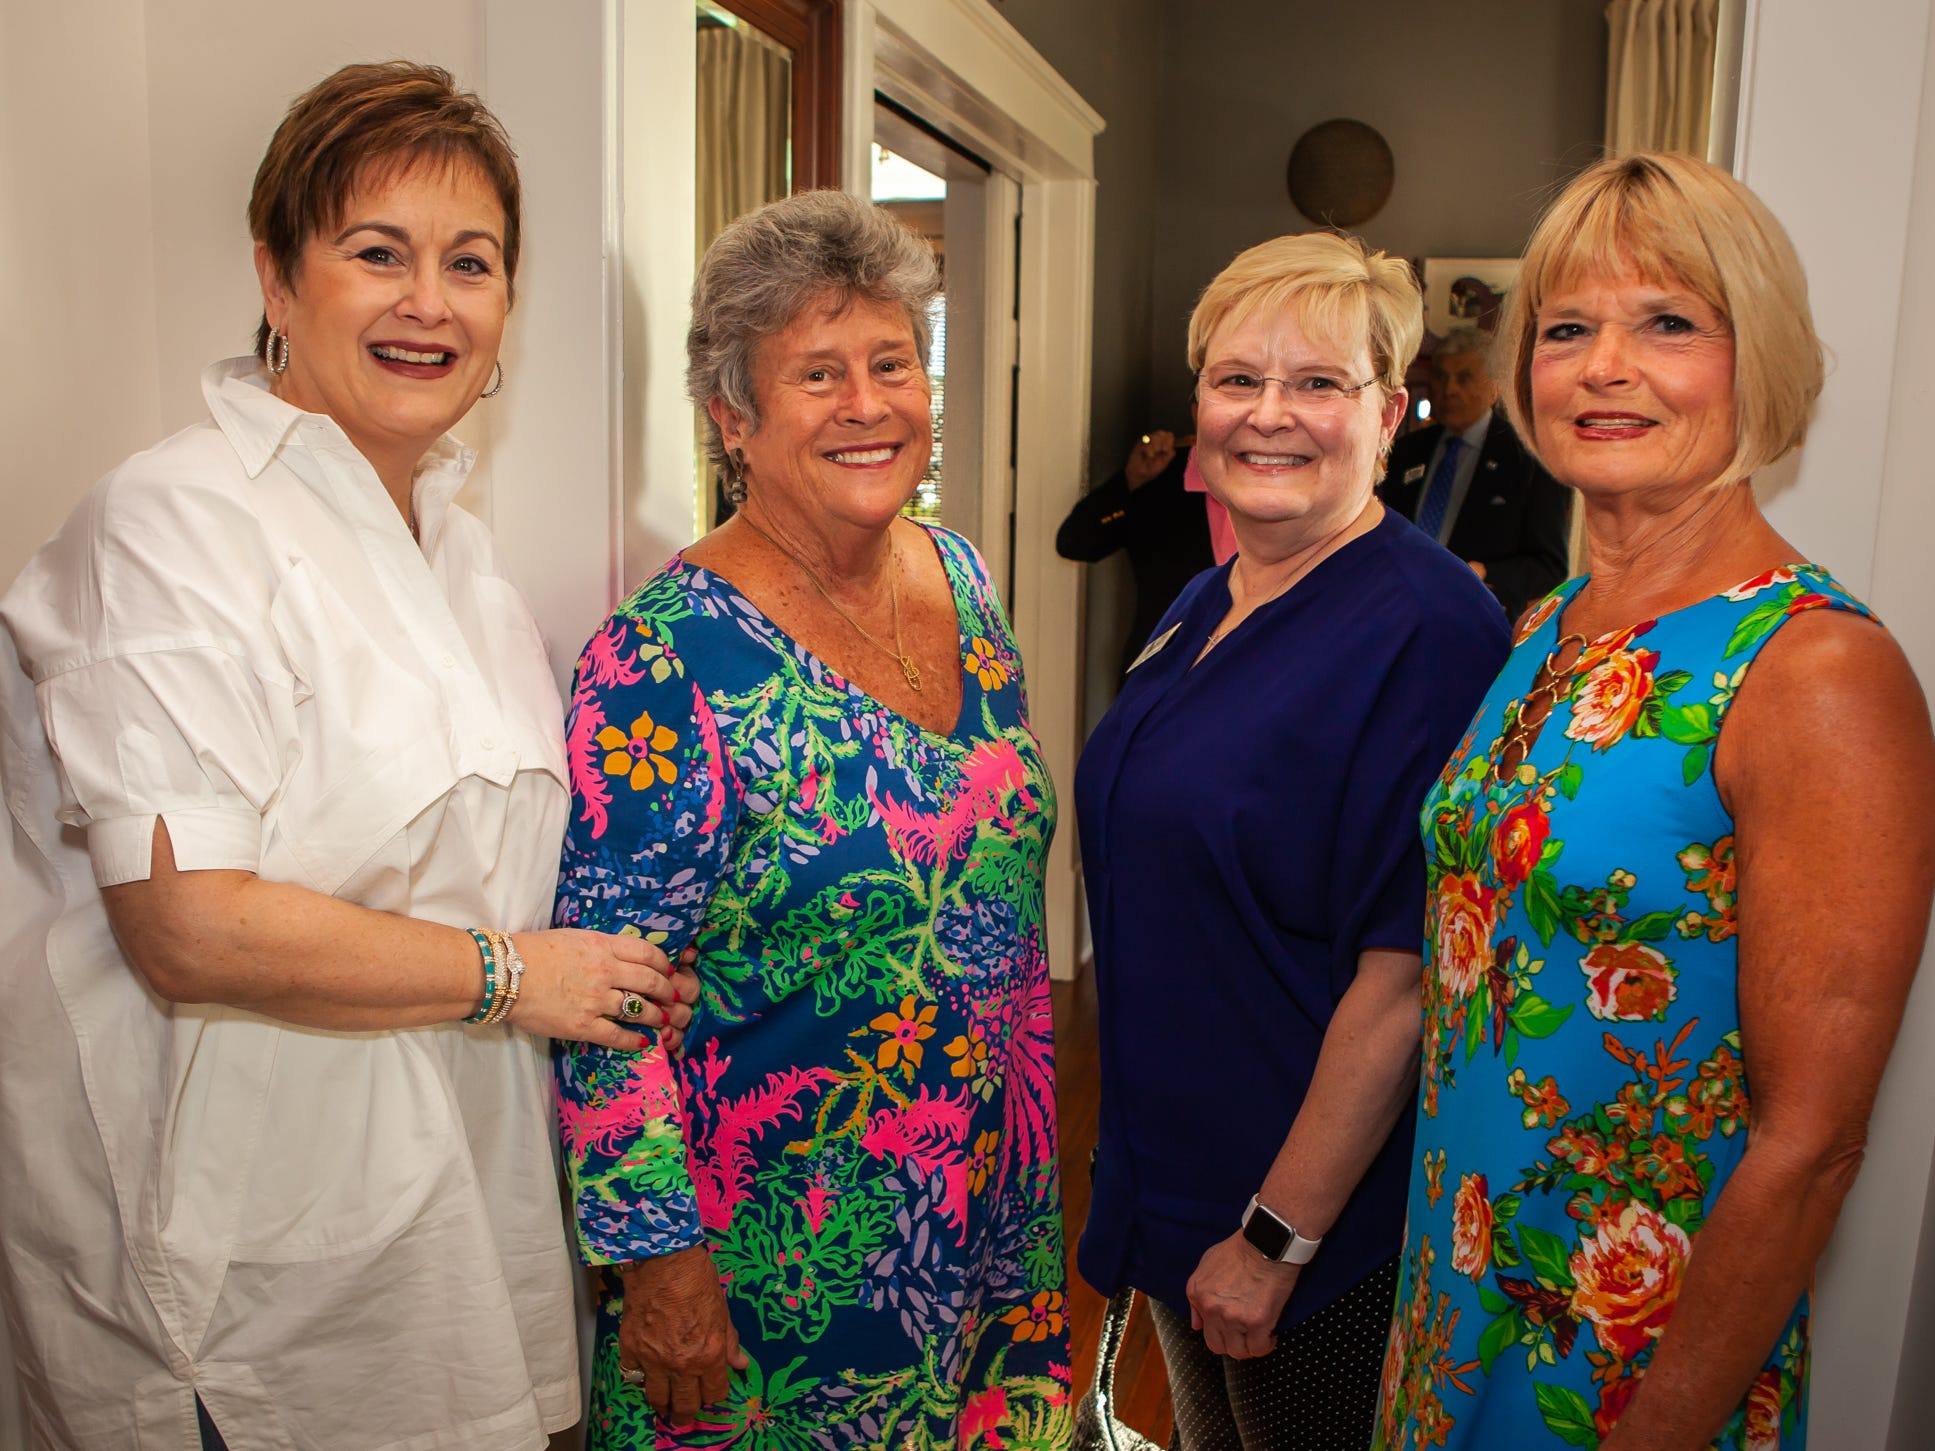 Lisa Halliburton, Andrea Calfee, Mary Beth Wilson and Risé Hayes at An Evening on Lytle, hosted by Main Street Murfreesboro/Rutherford County. The event was held at the home of Rick and Amy Cottle.